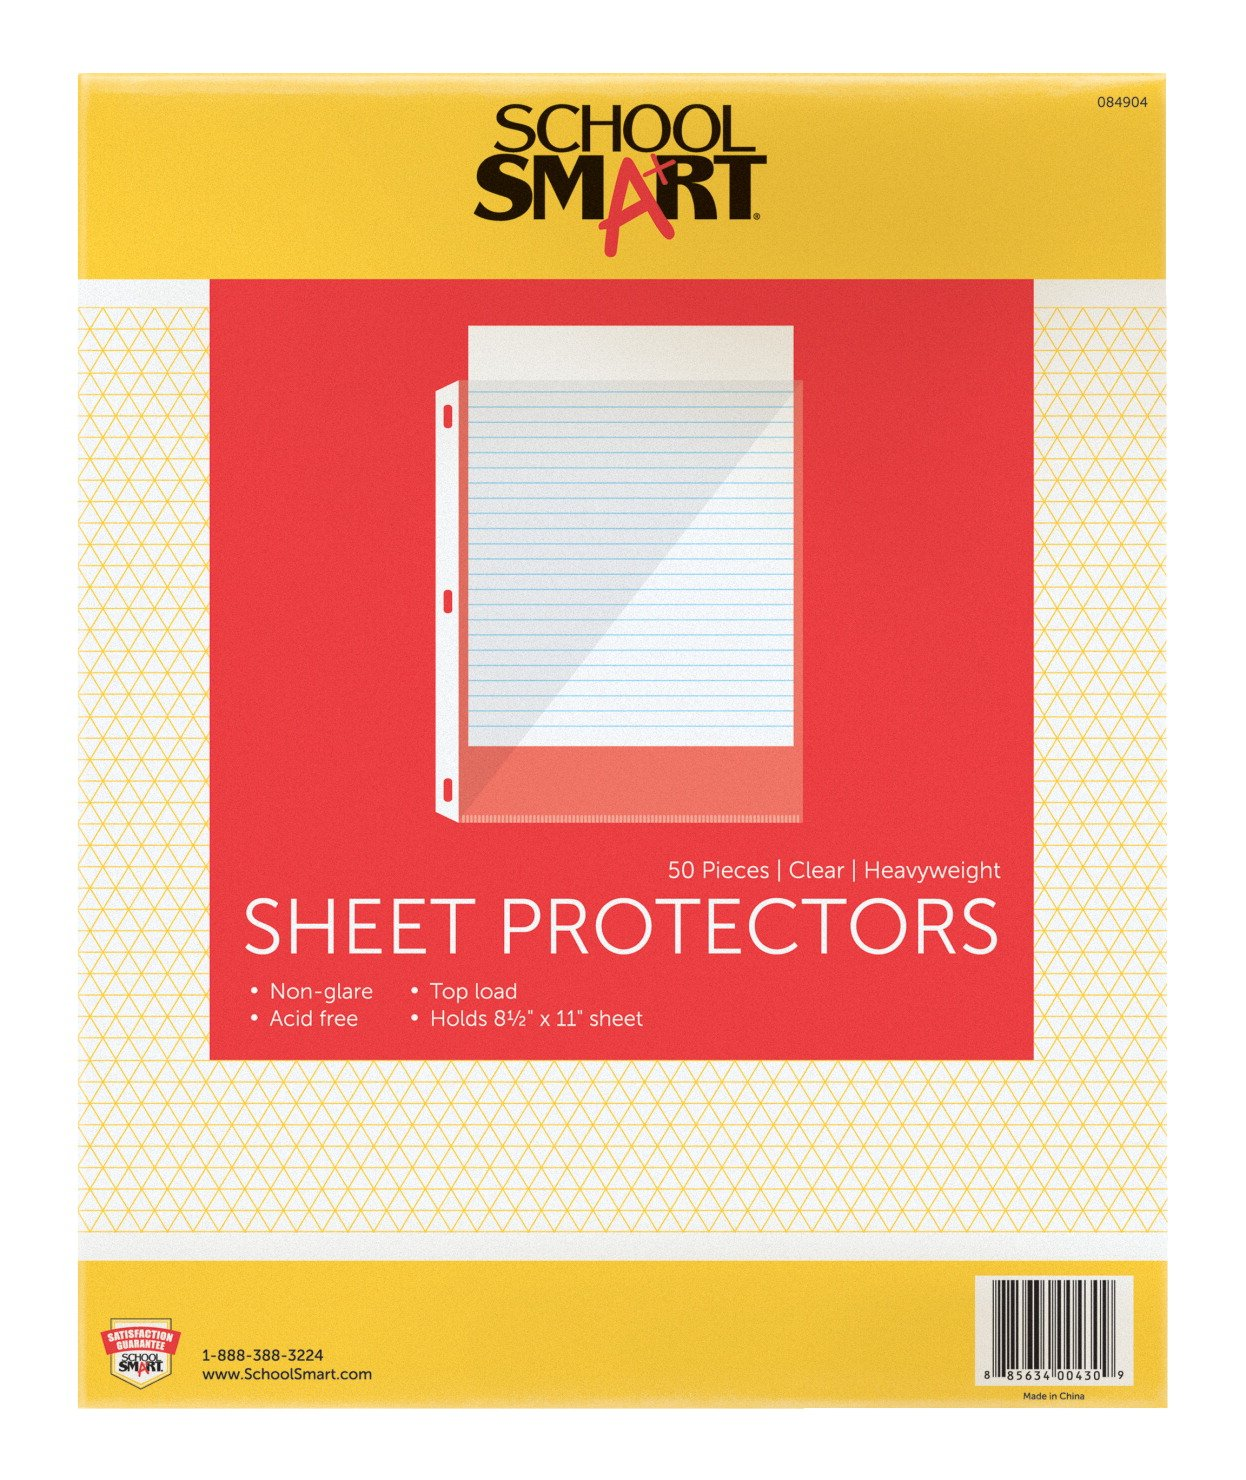 School Smart Top Load Heavyweight Polypropylene Non Glare Sheet Protectors - Pack of 50 - Clear